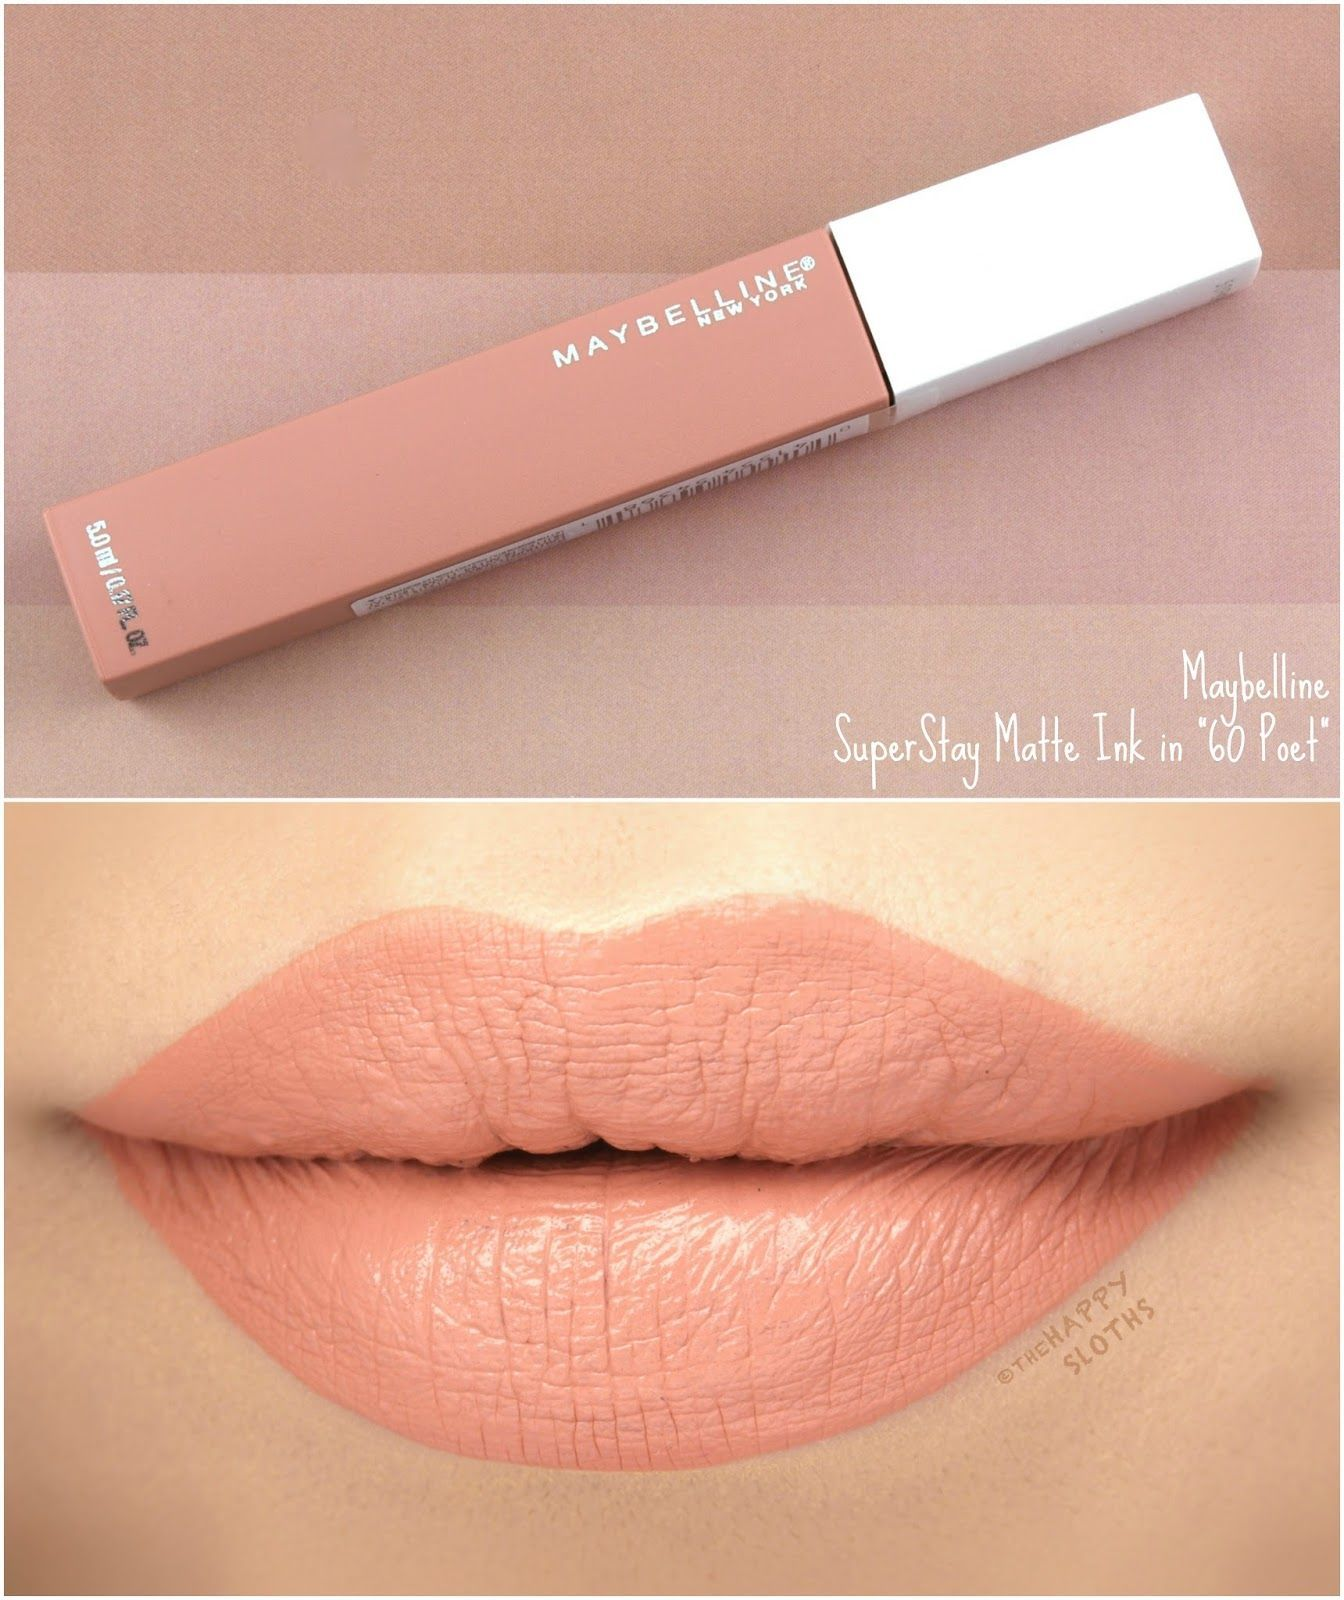 Maybelline Superstay Matte Ink 60 Poet Review And Swatches